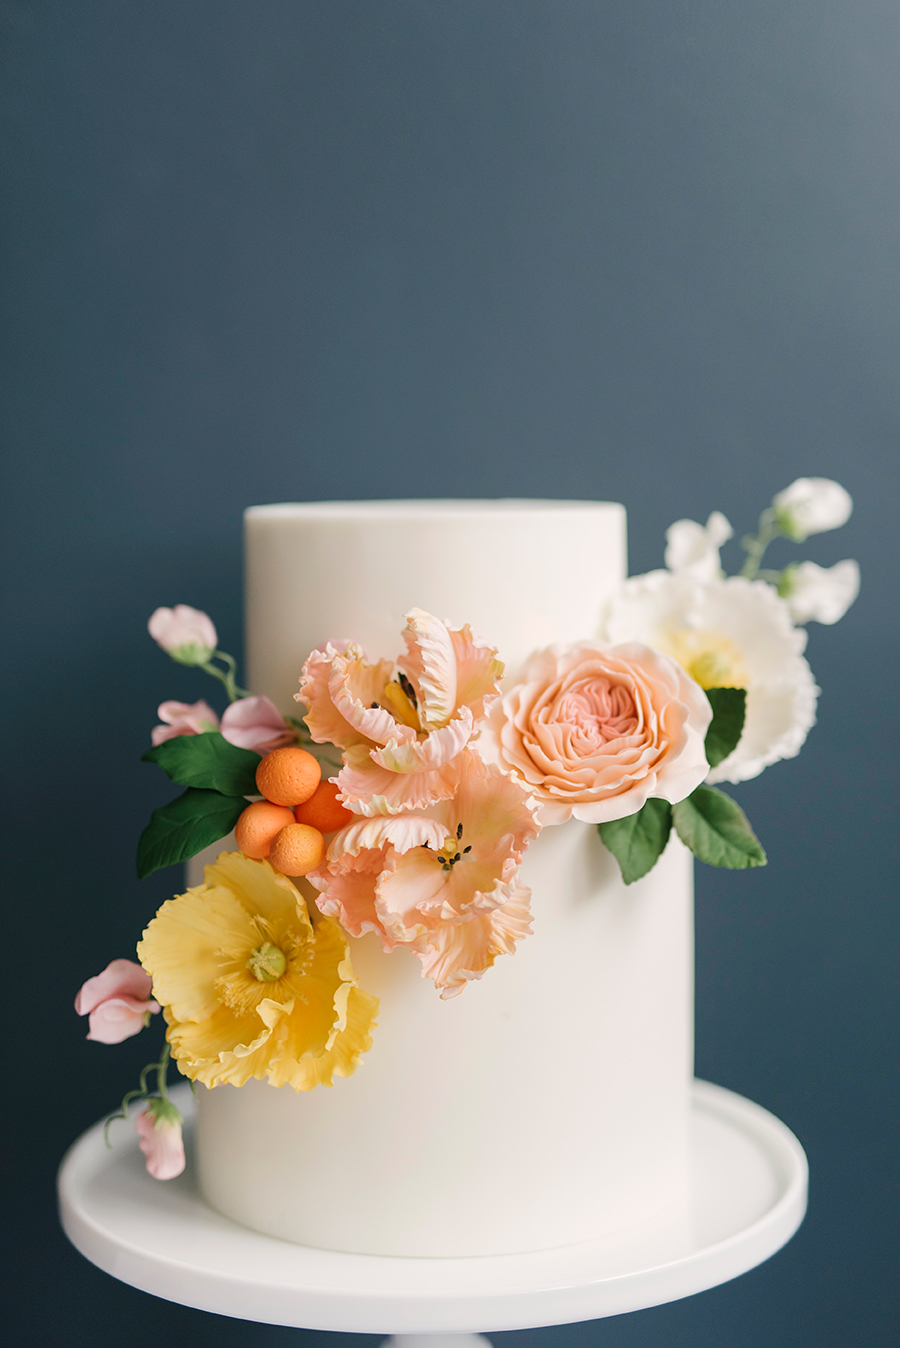 white fondant wedding cake with flowers